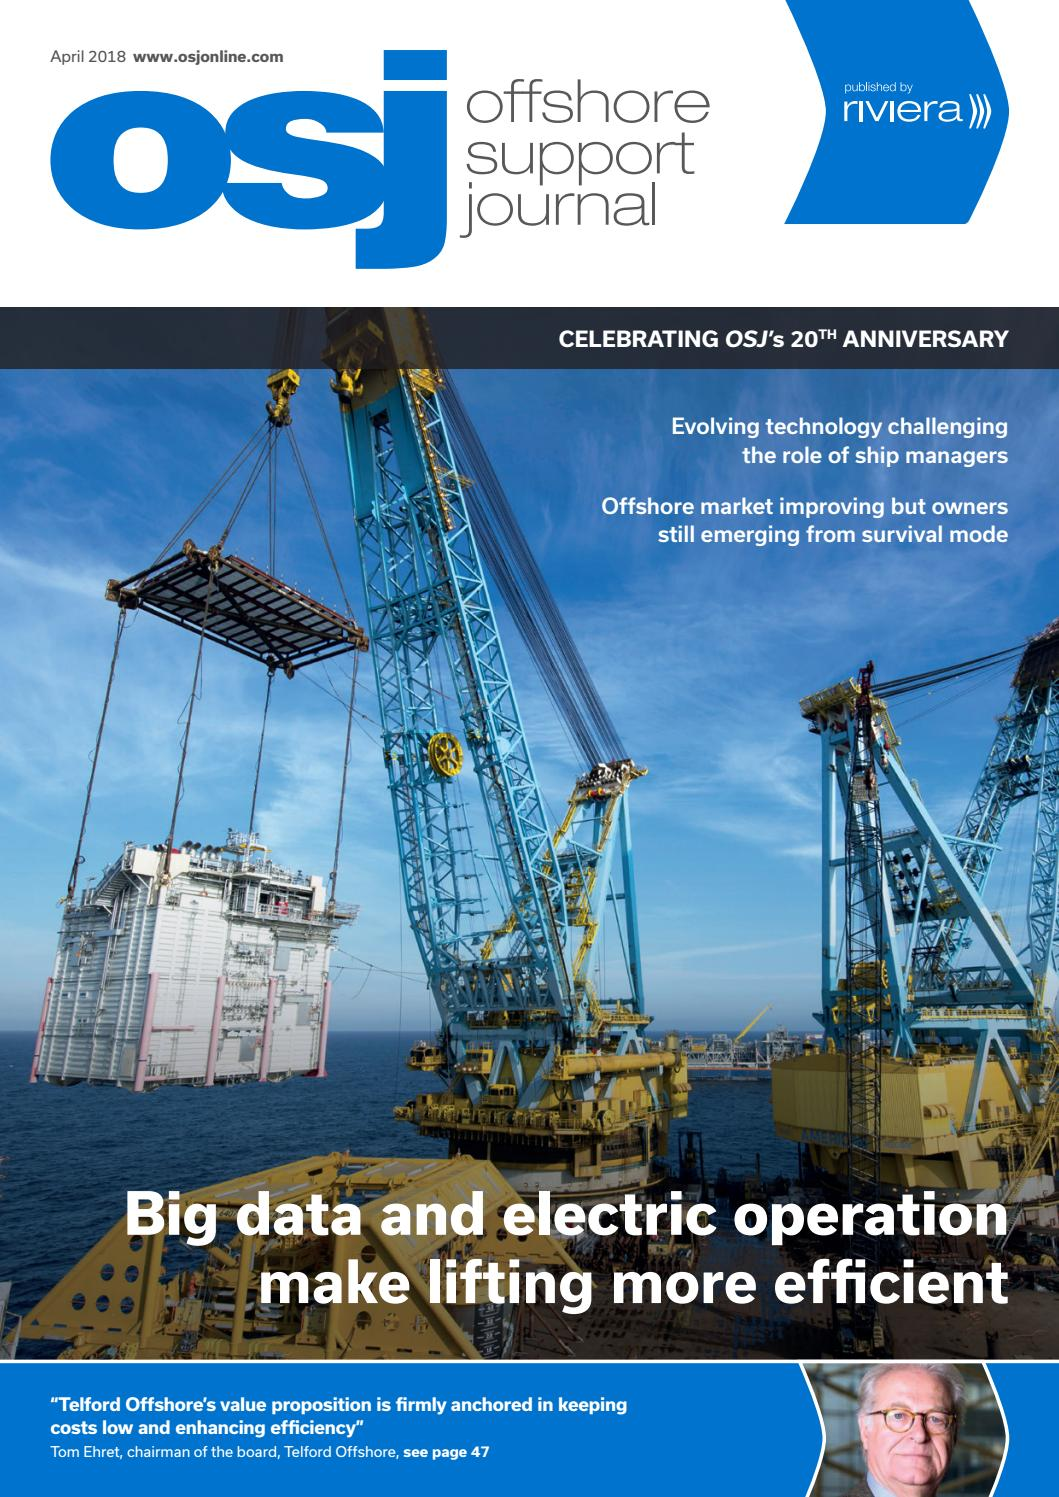 Offshore Support Journal April 2018 by rivieramaritimemedia - issuu